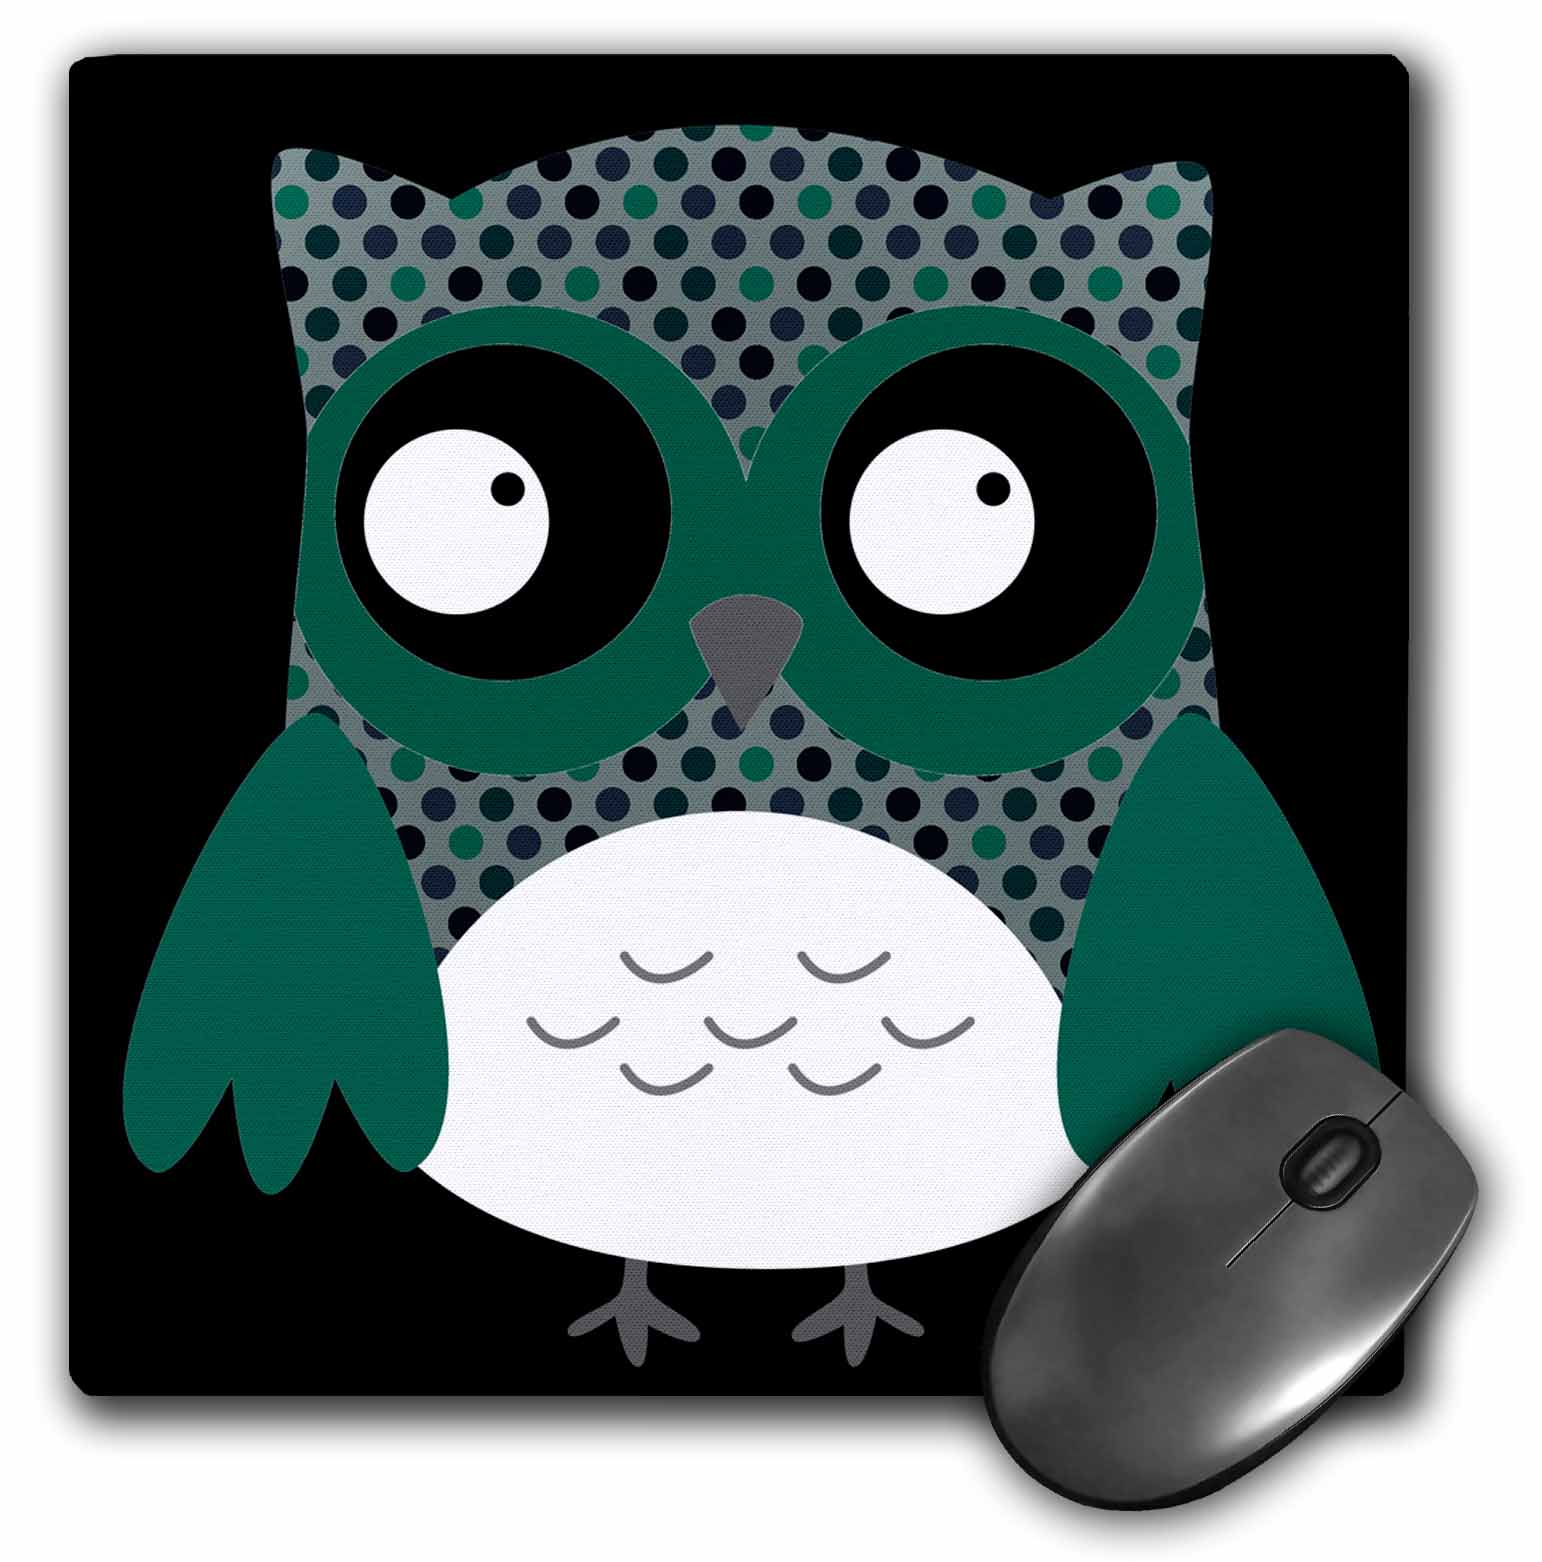 3dRose Cute Deep Blue and Green Polka Dots Owl, Mouse Pad, 8 by 8 inches